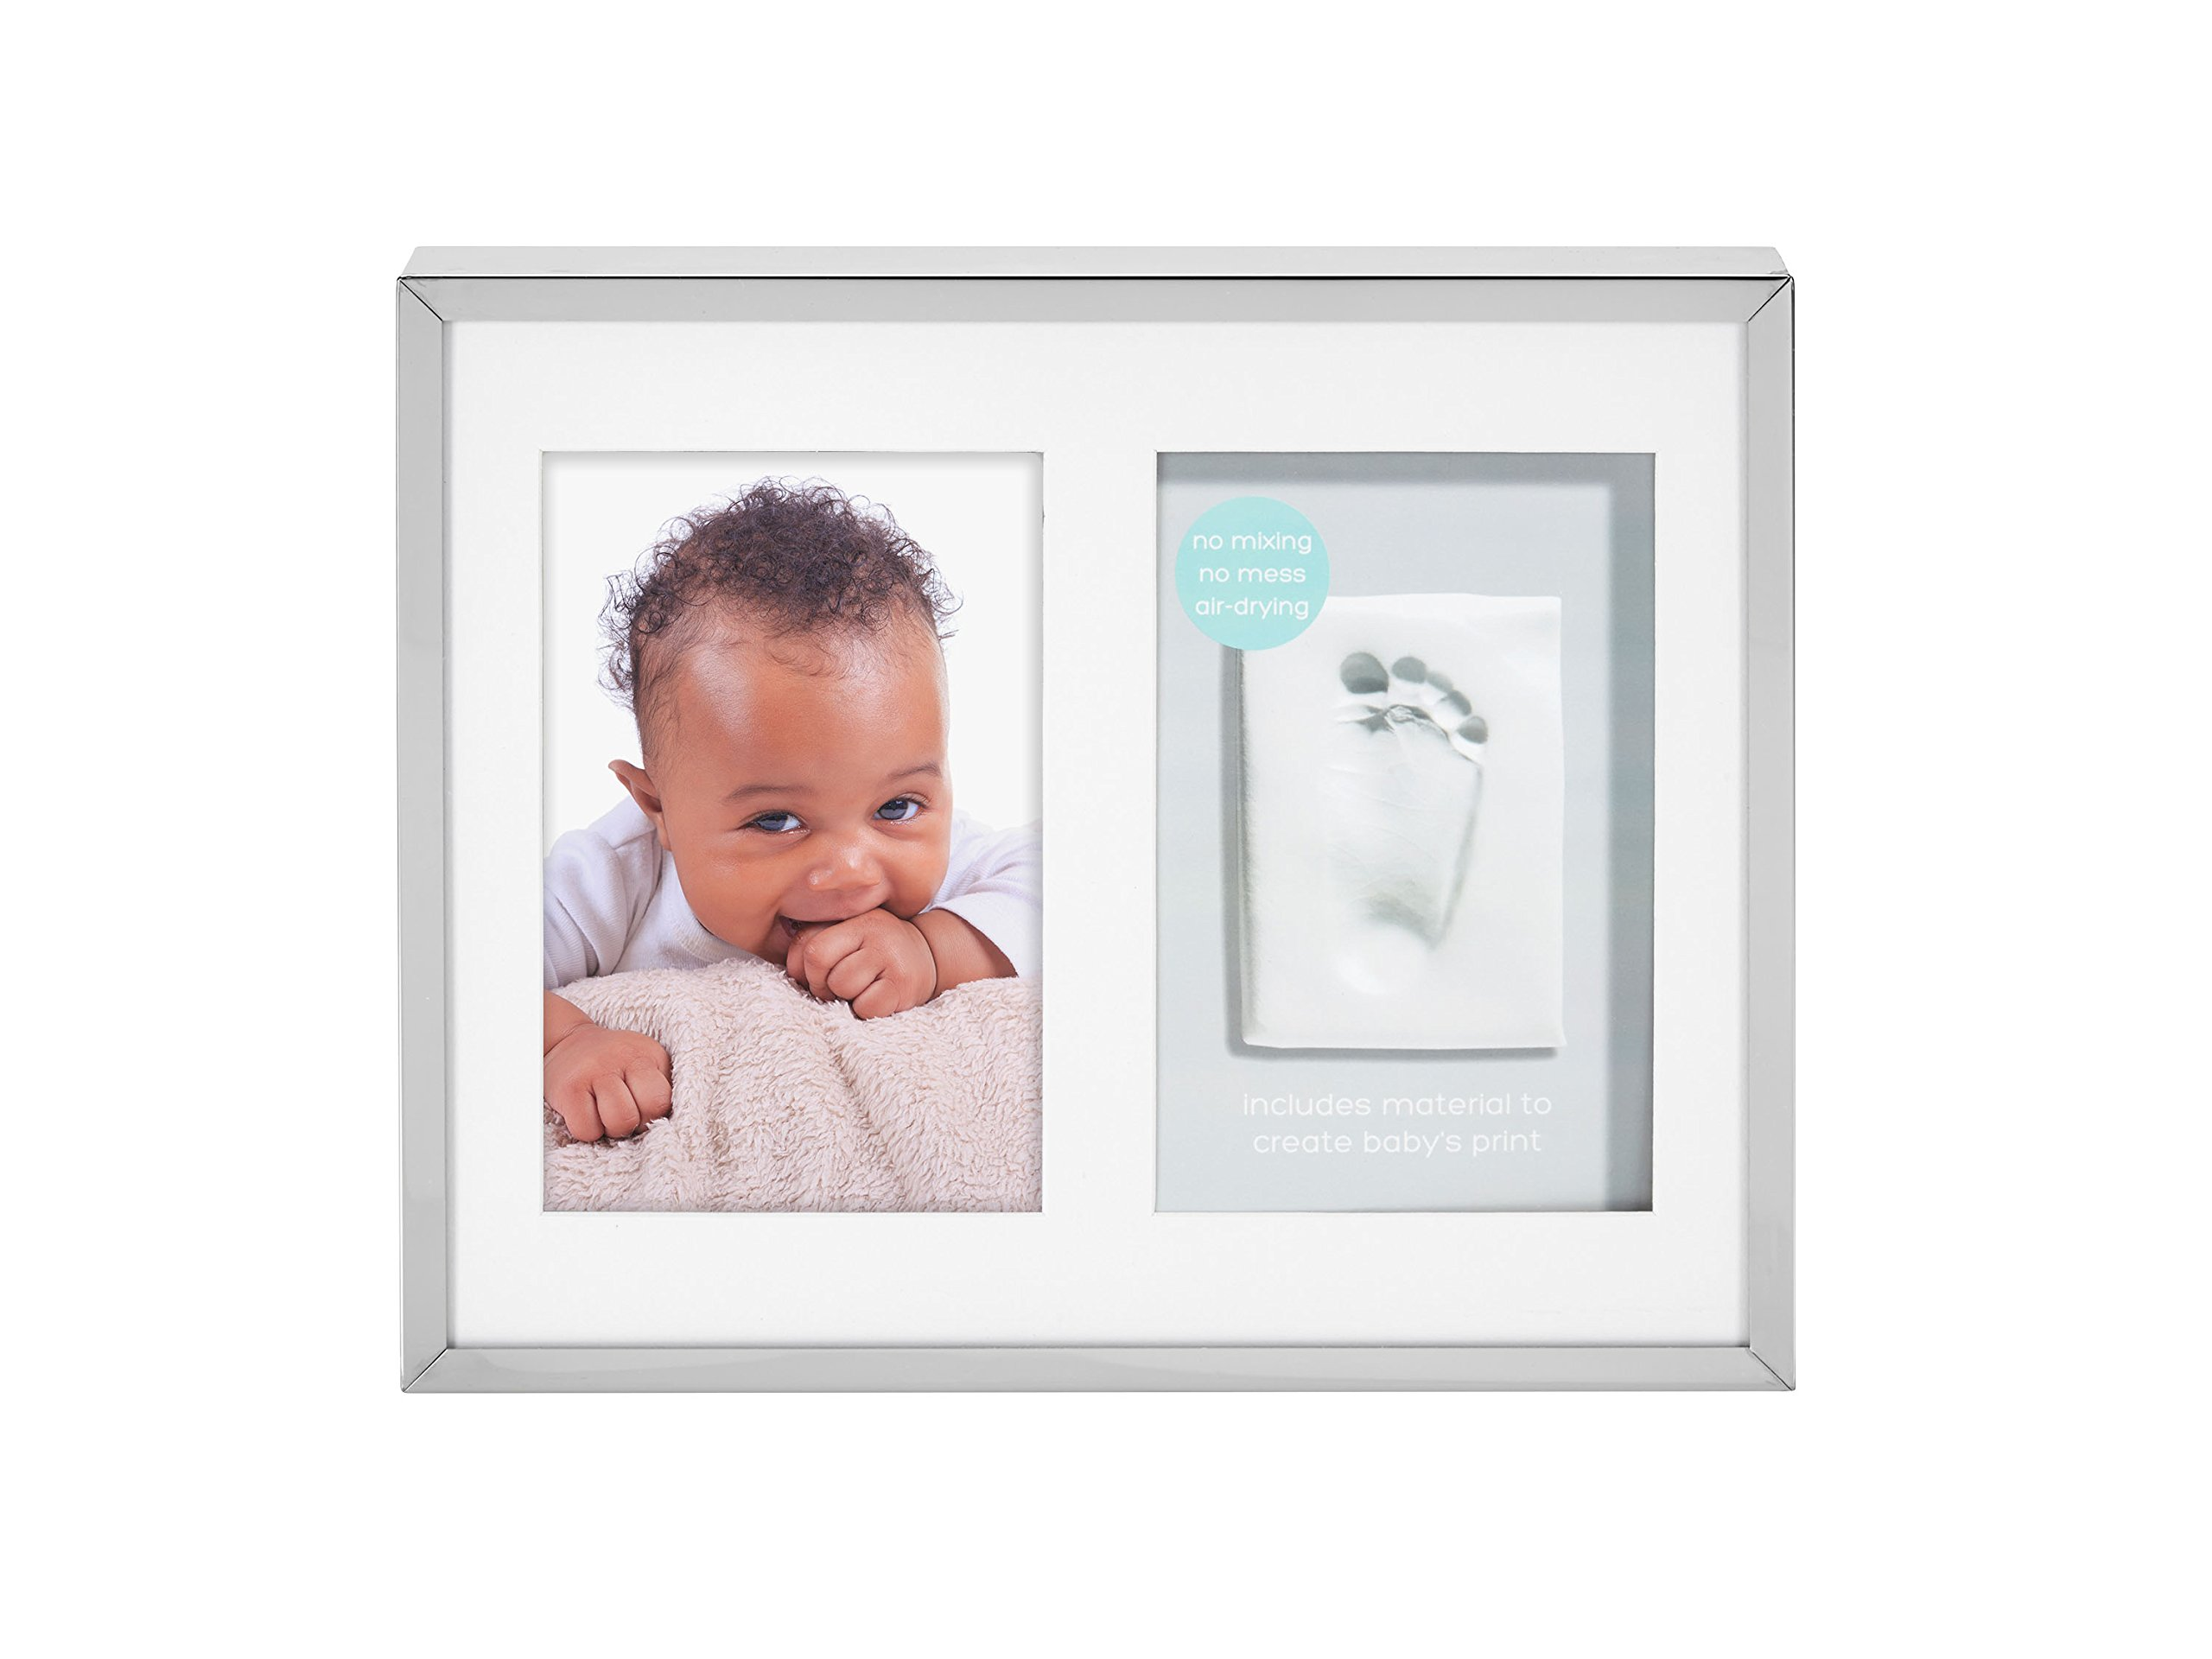 Tiny Ideas Baby's Prints Photo Frame with Included Impression Kit, Keepsake Wall, Silver by Tiny Ideas